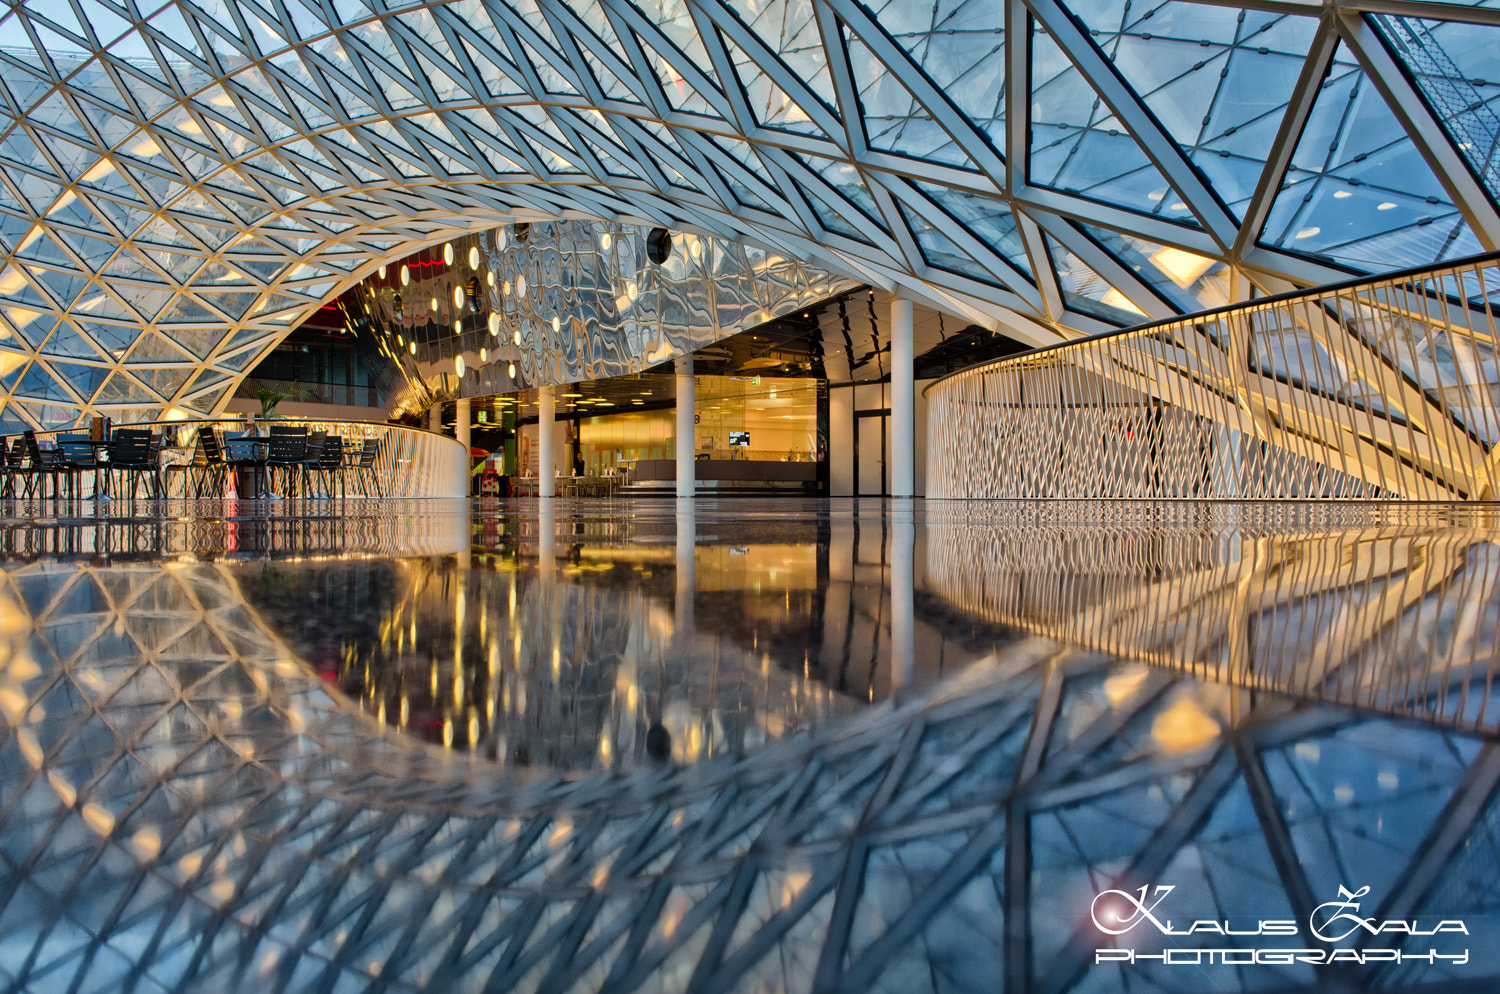 Photograph limitless architecture by klausZ - Photography on 500px